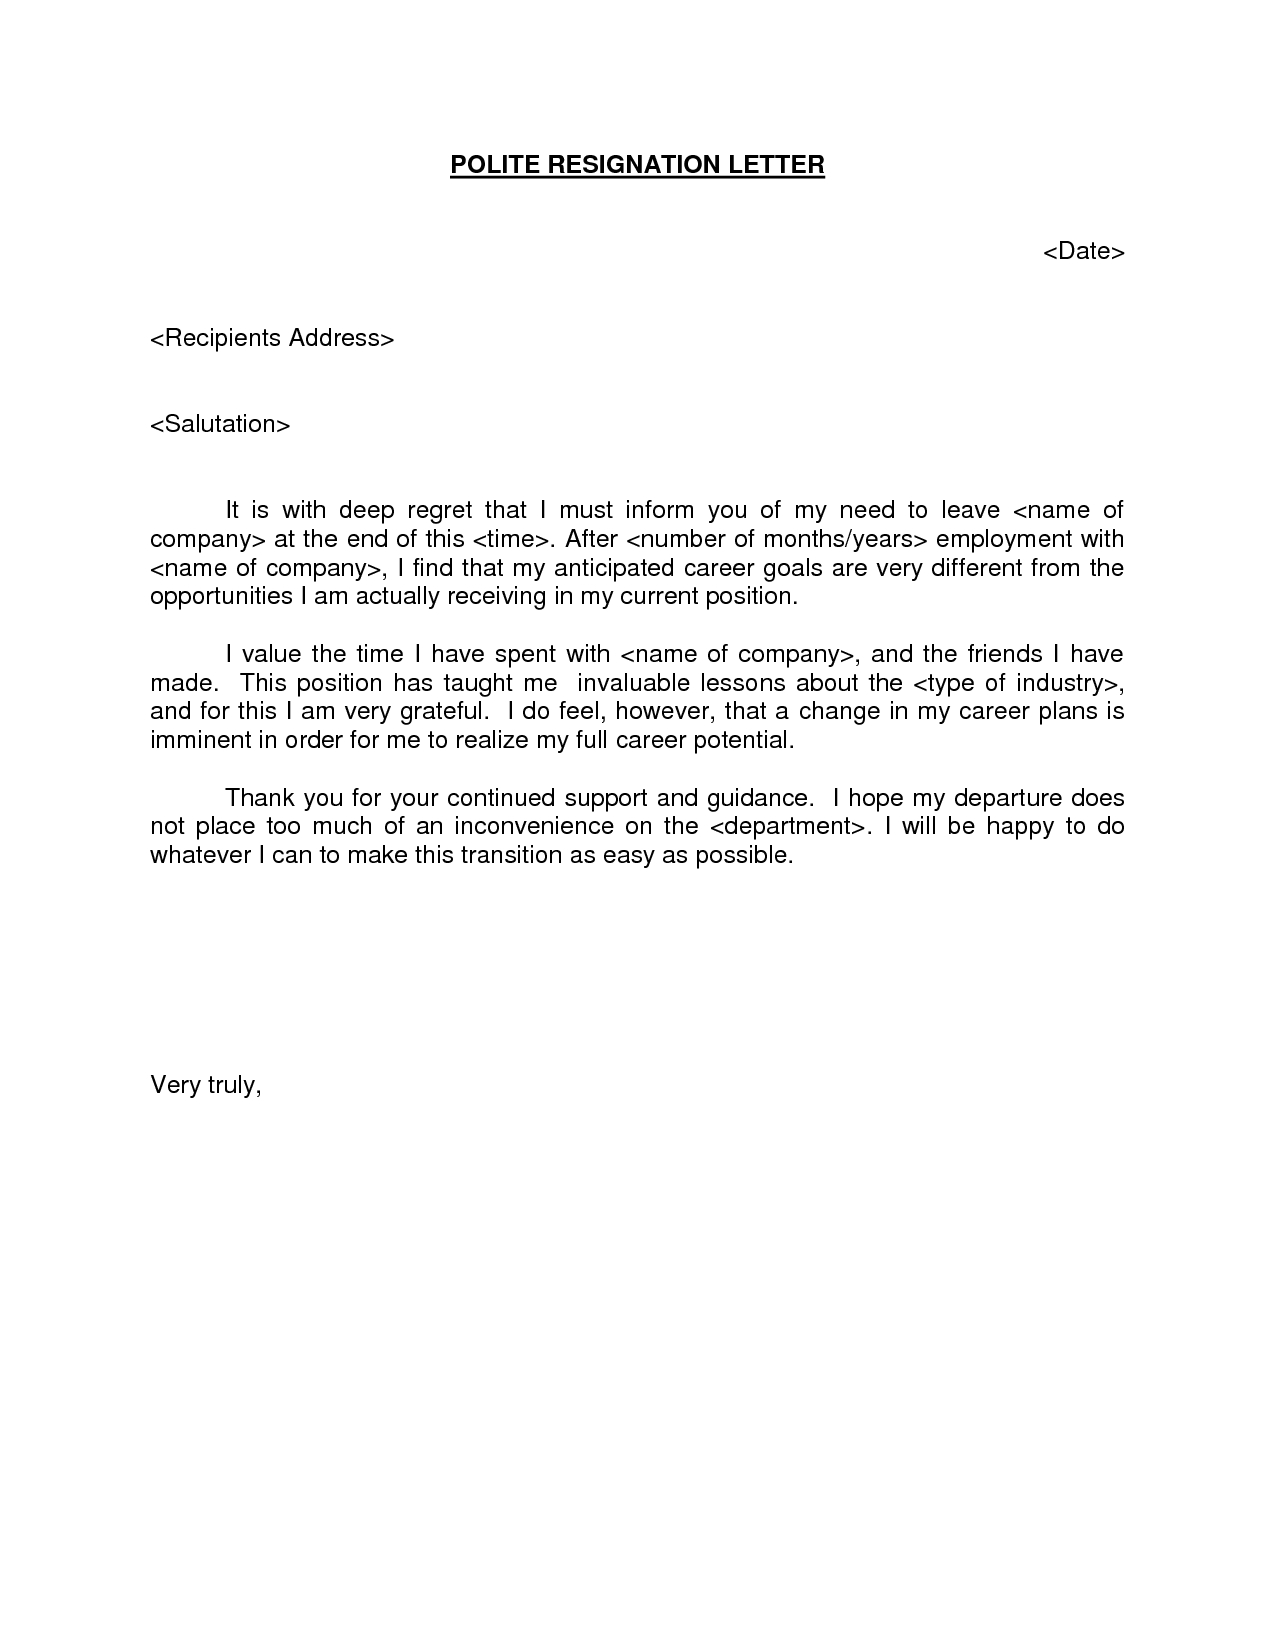 resignation letter template free Collection-POLITE RESIGNATION LETTER BestdealformoneyWriting A Letter Resignation Email Letter Sample 18-t